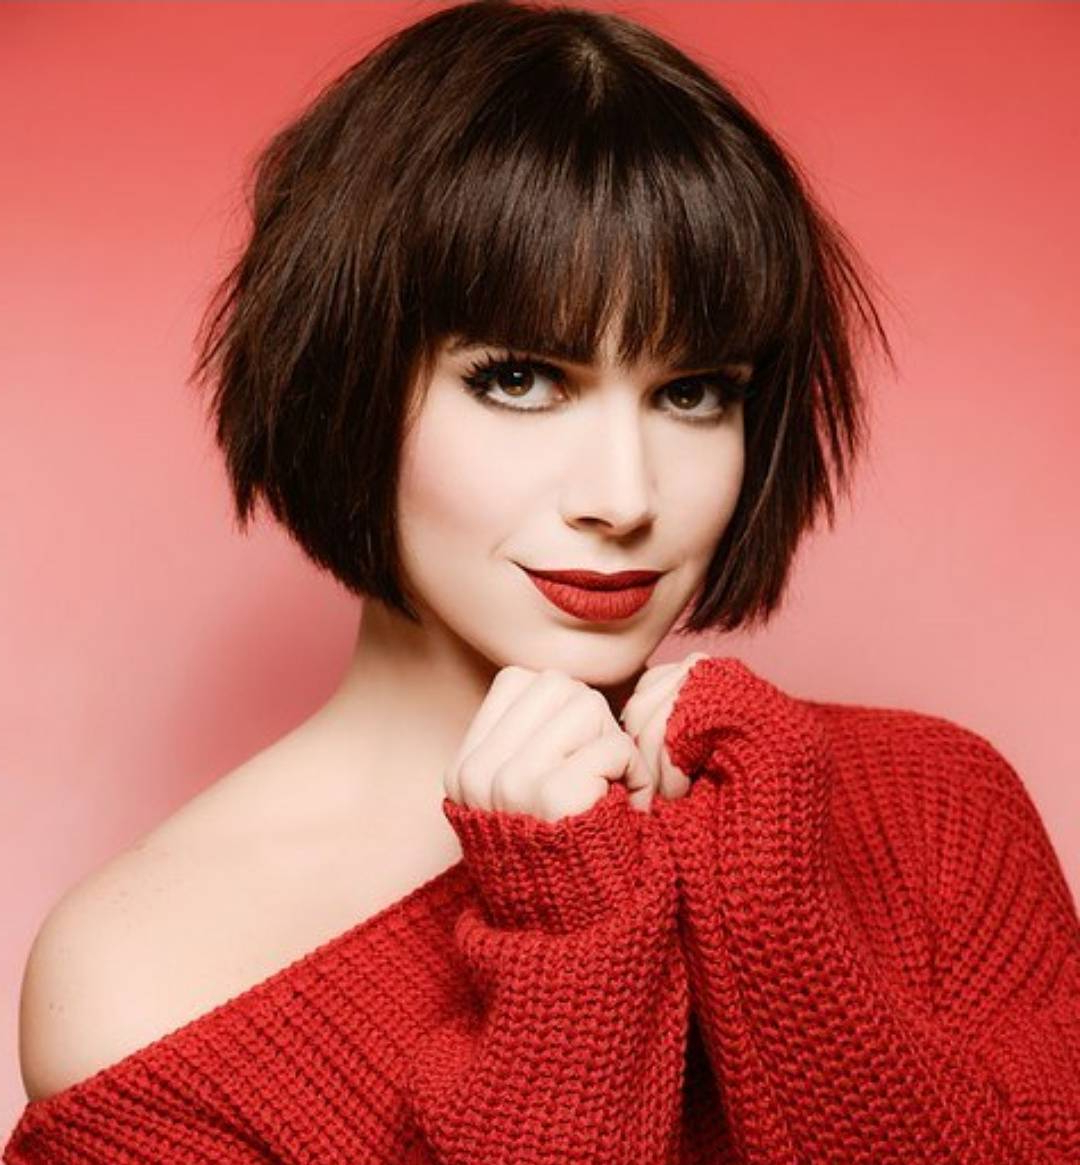 10 Chic Short Bob Haircuts That Balance Your Face Shape! Throughout Classy Bob Haircuts With Bangs (Gallery 10 of 20)